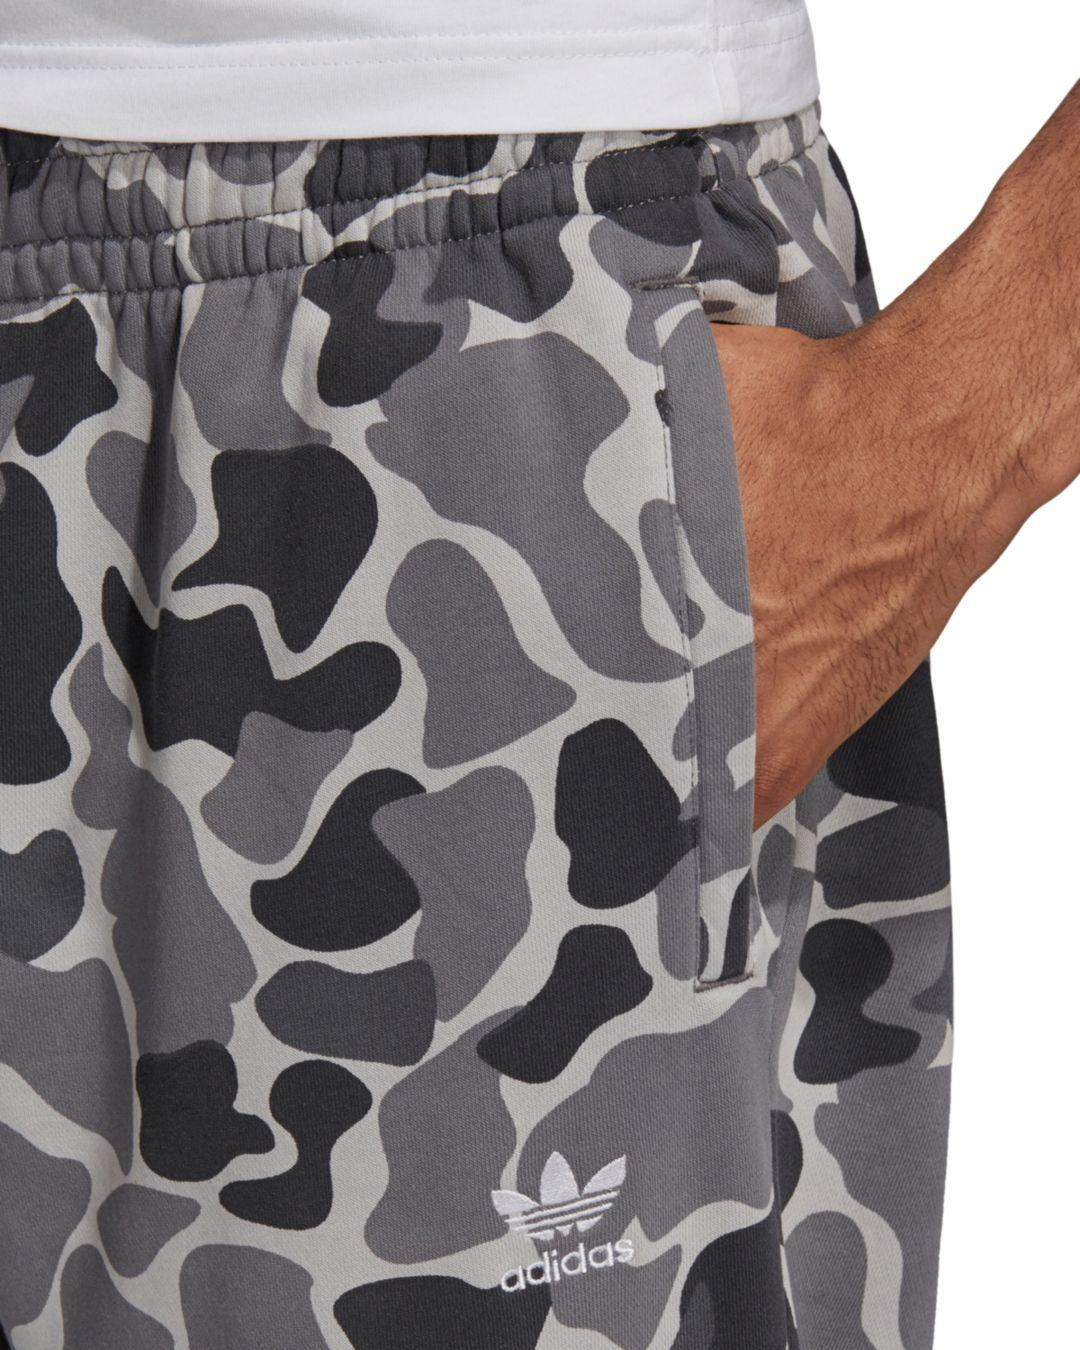 88763e3ae8 adidas Originals Camouflage Ombre Sweatpants in Gray for Men - Lyst